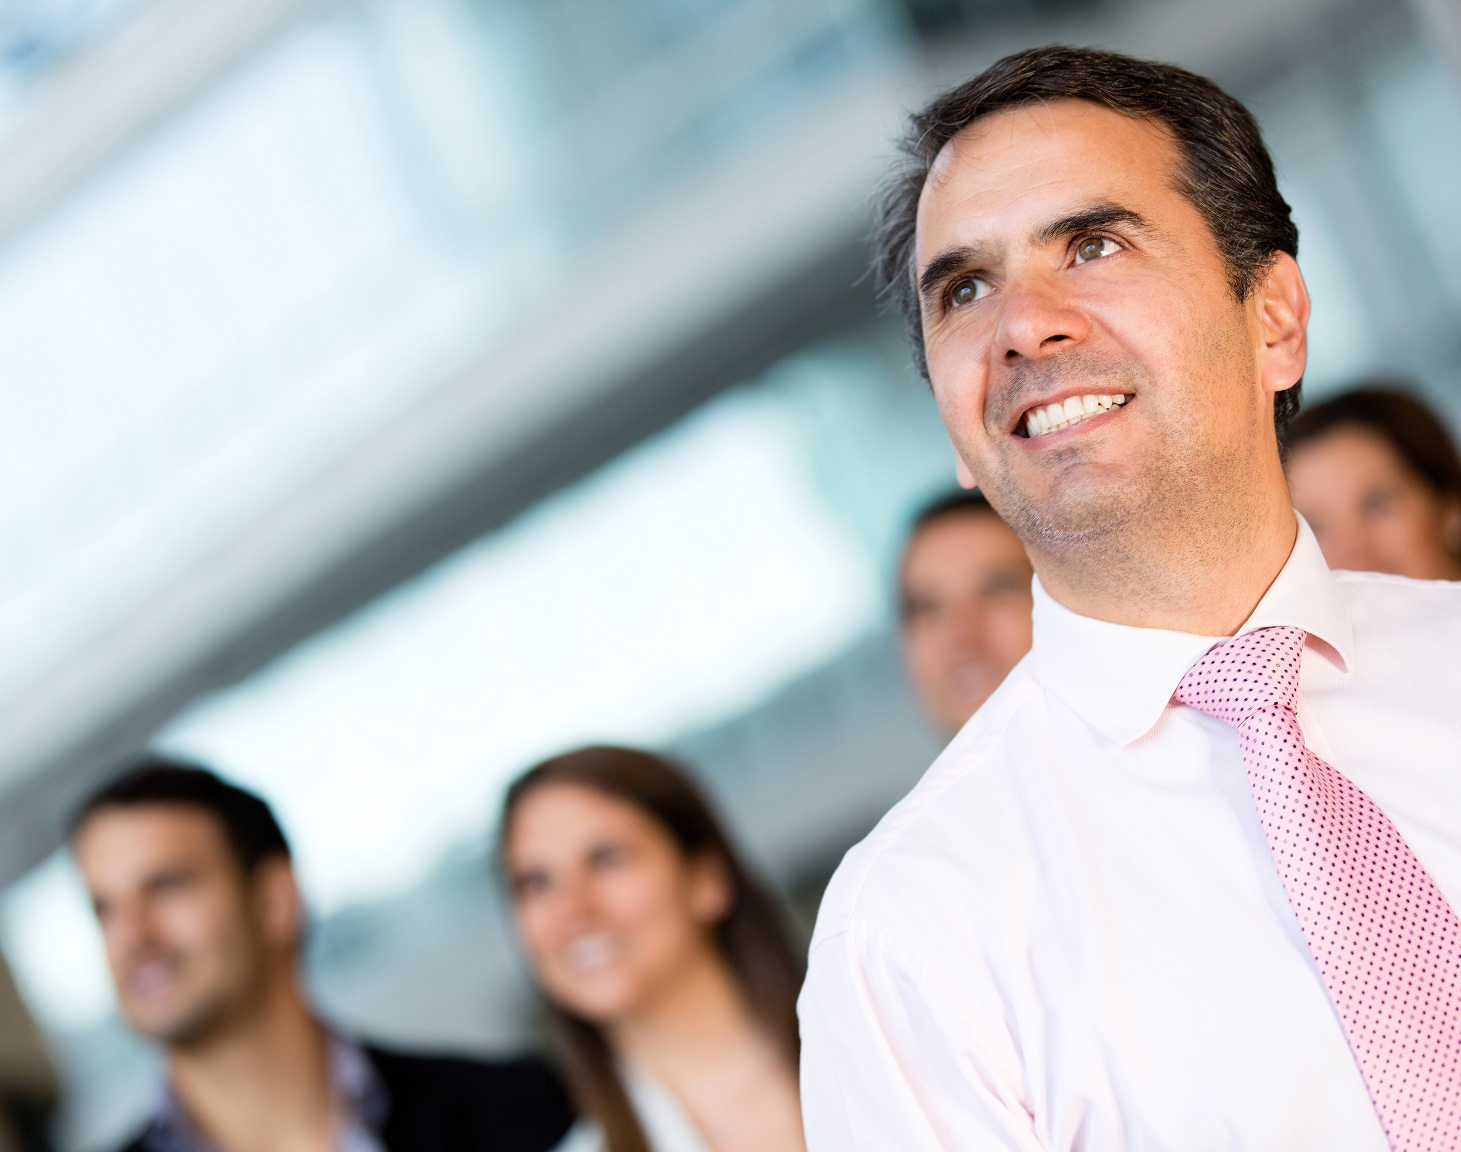 How to encourage, motivate and support your people